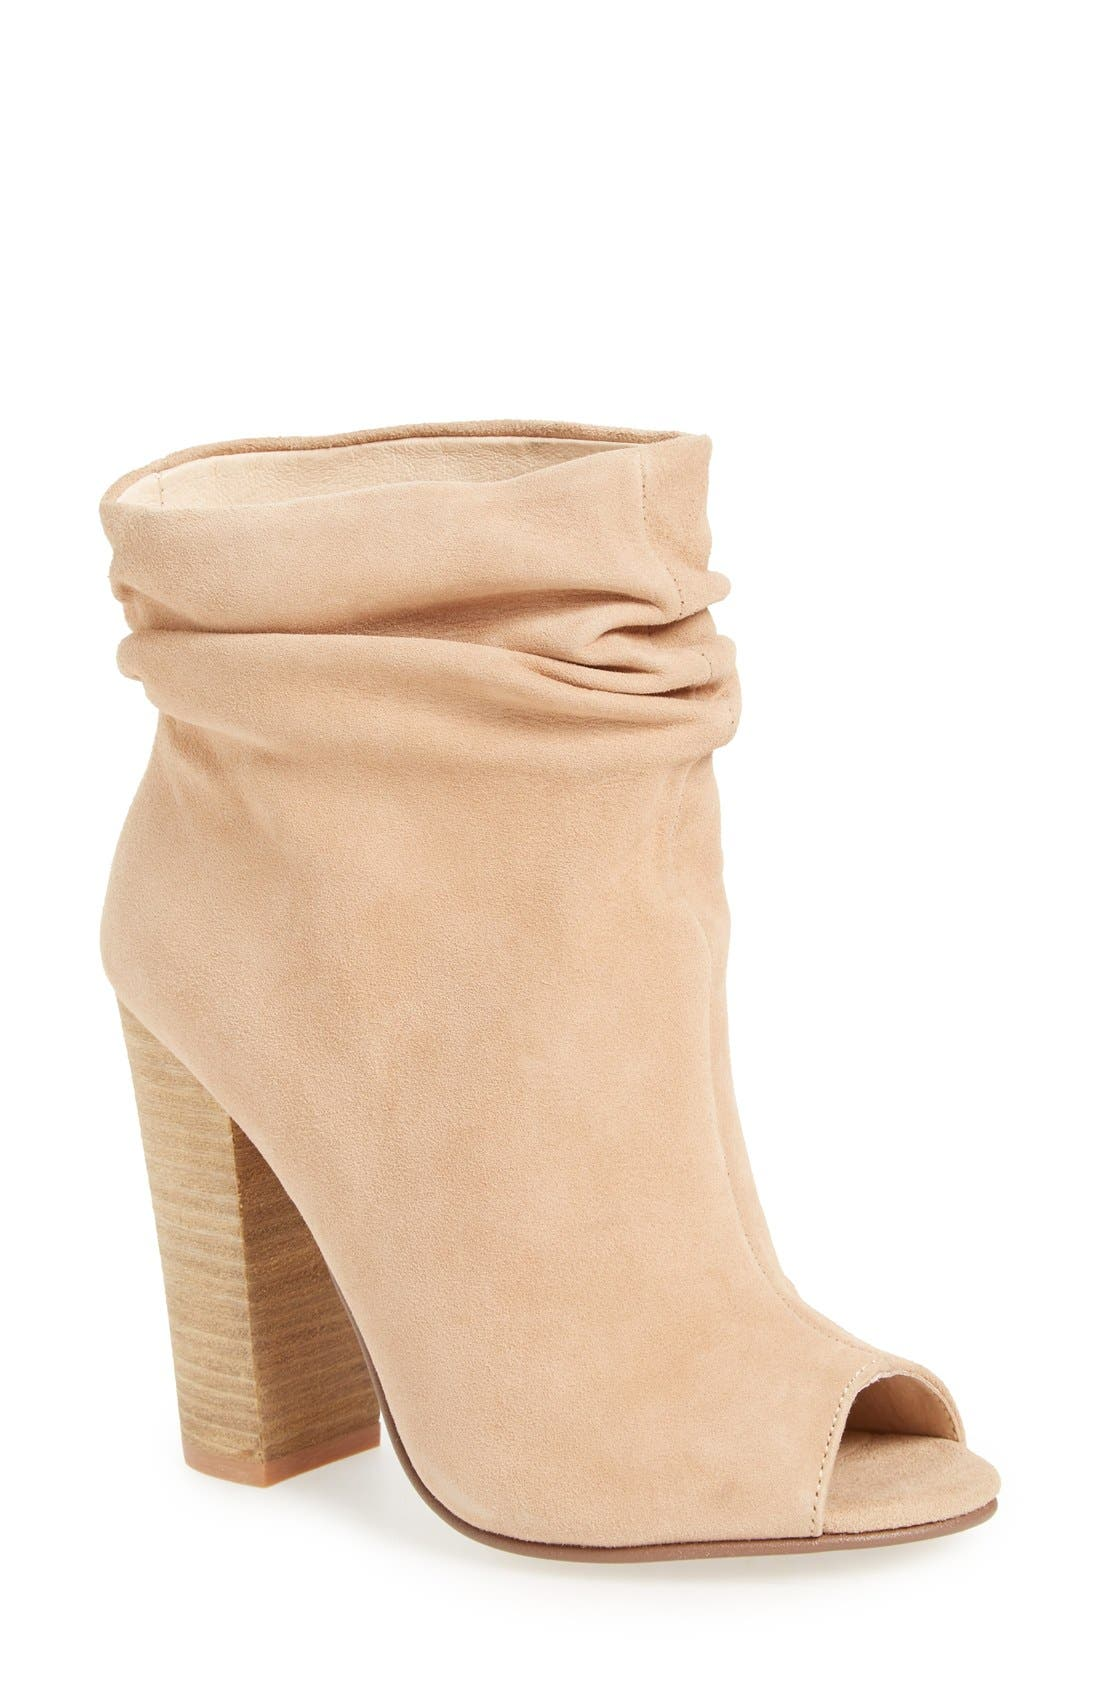 'Laurel' Peep Toe Bootie,                             Main thumbnail 6, color,